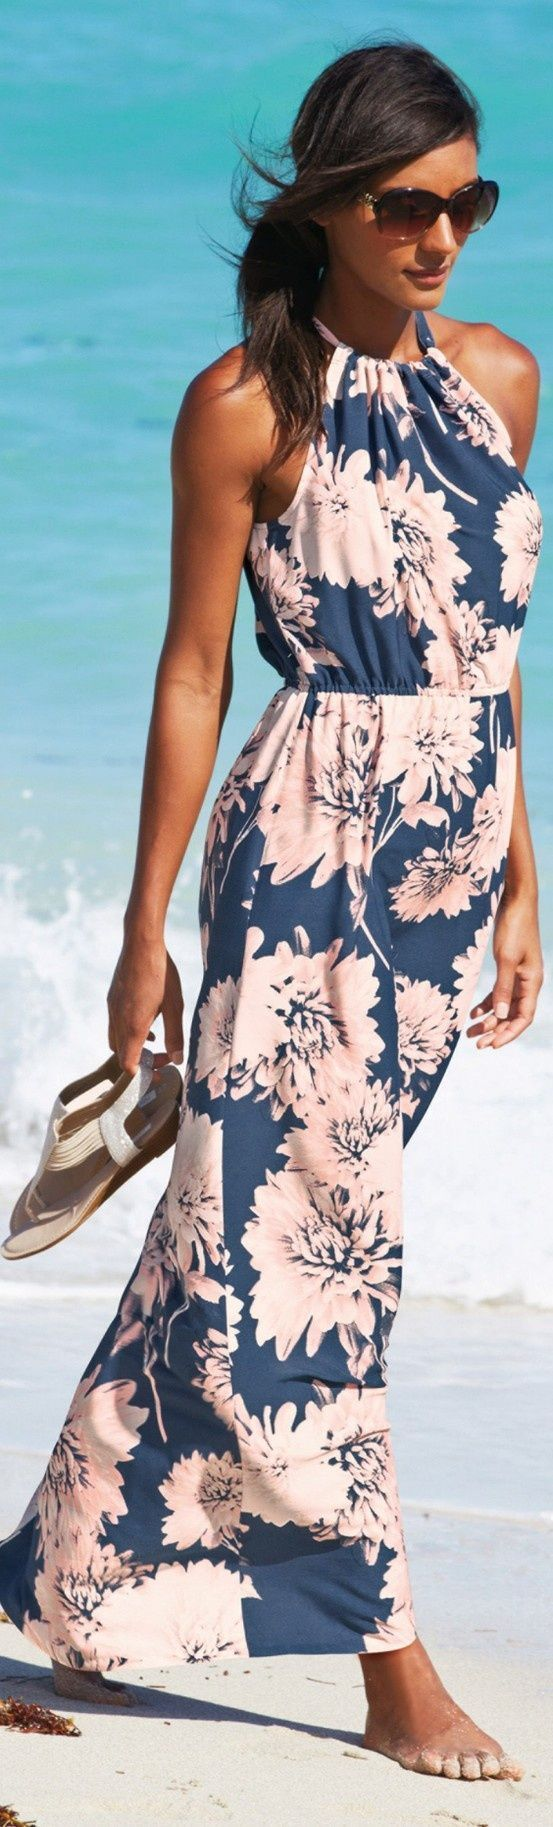 Fashion trends | Floral printed summer maxi dress